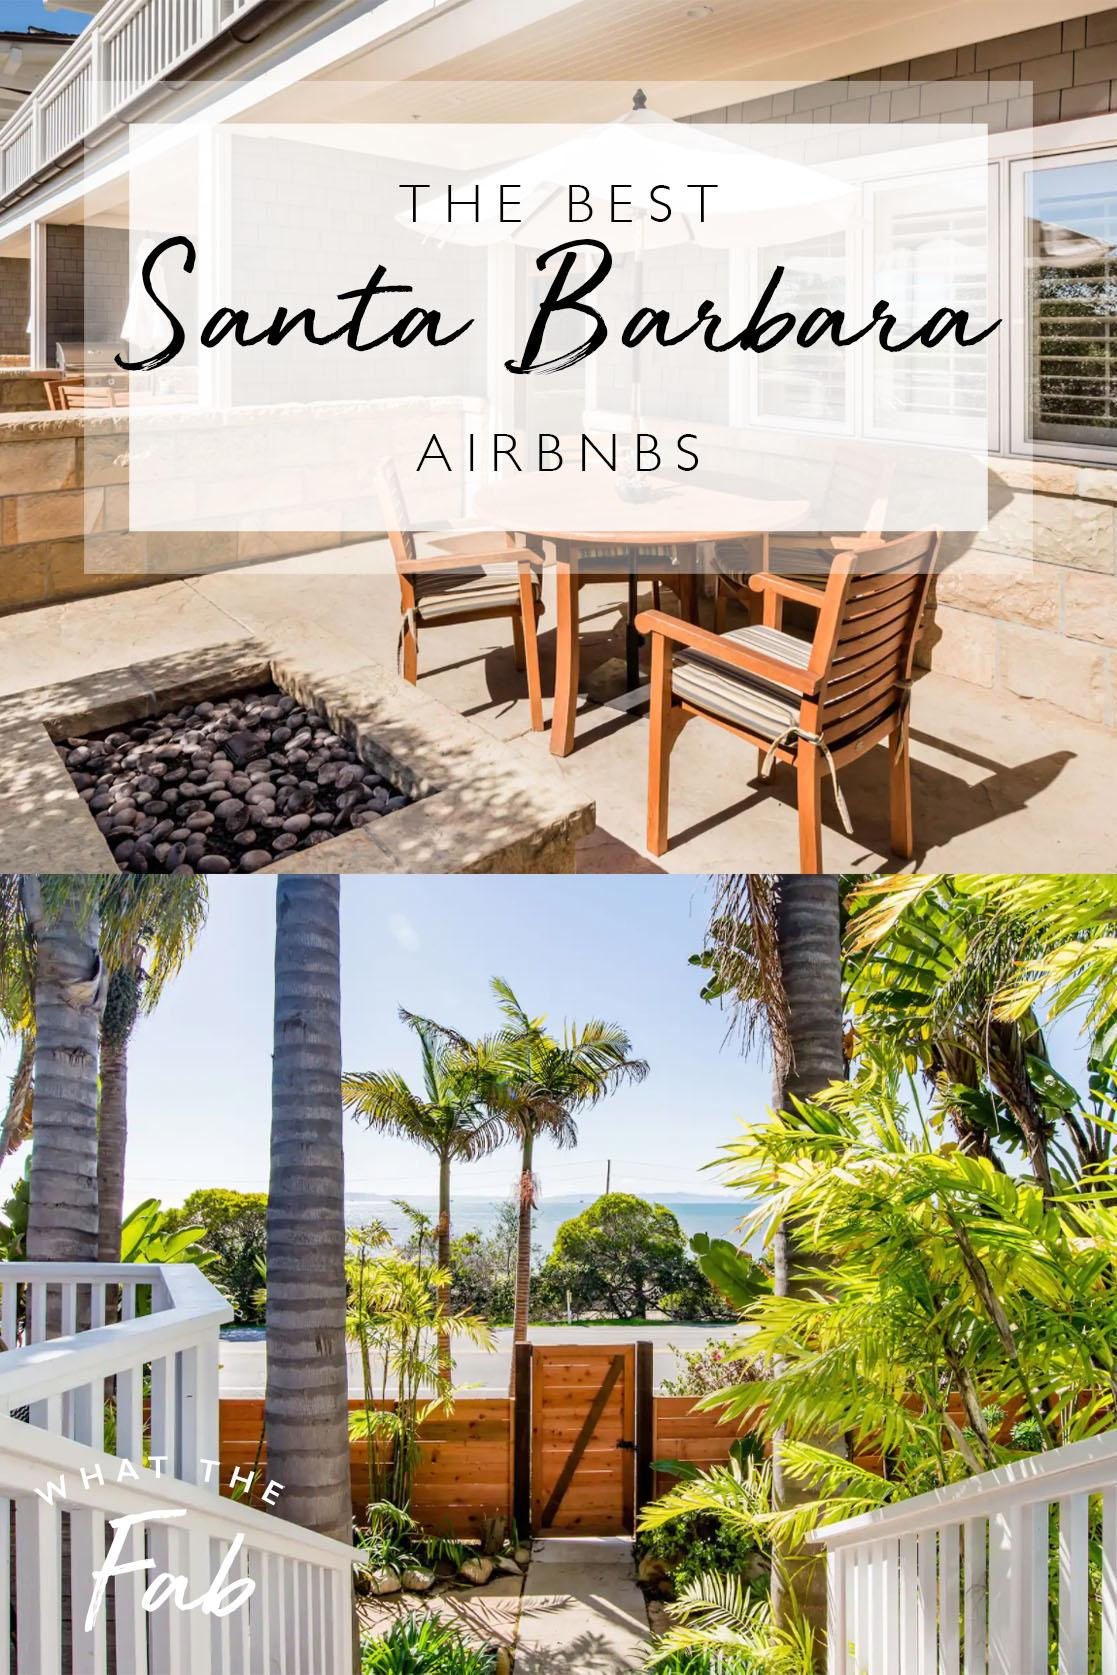 Santa Barbara Airbnbs, by Travel Blogger What The Fab